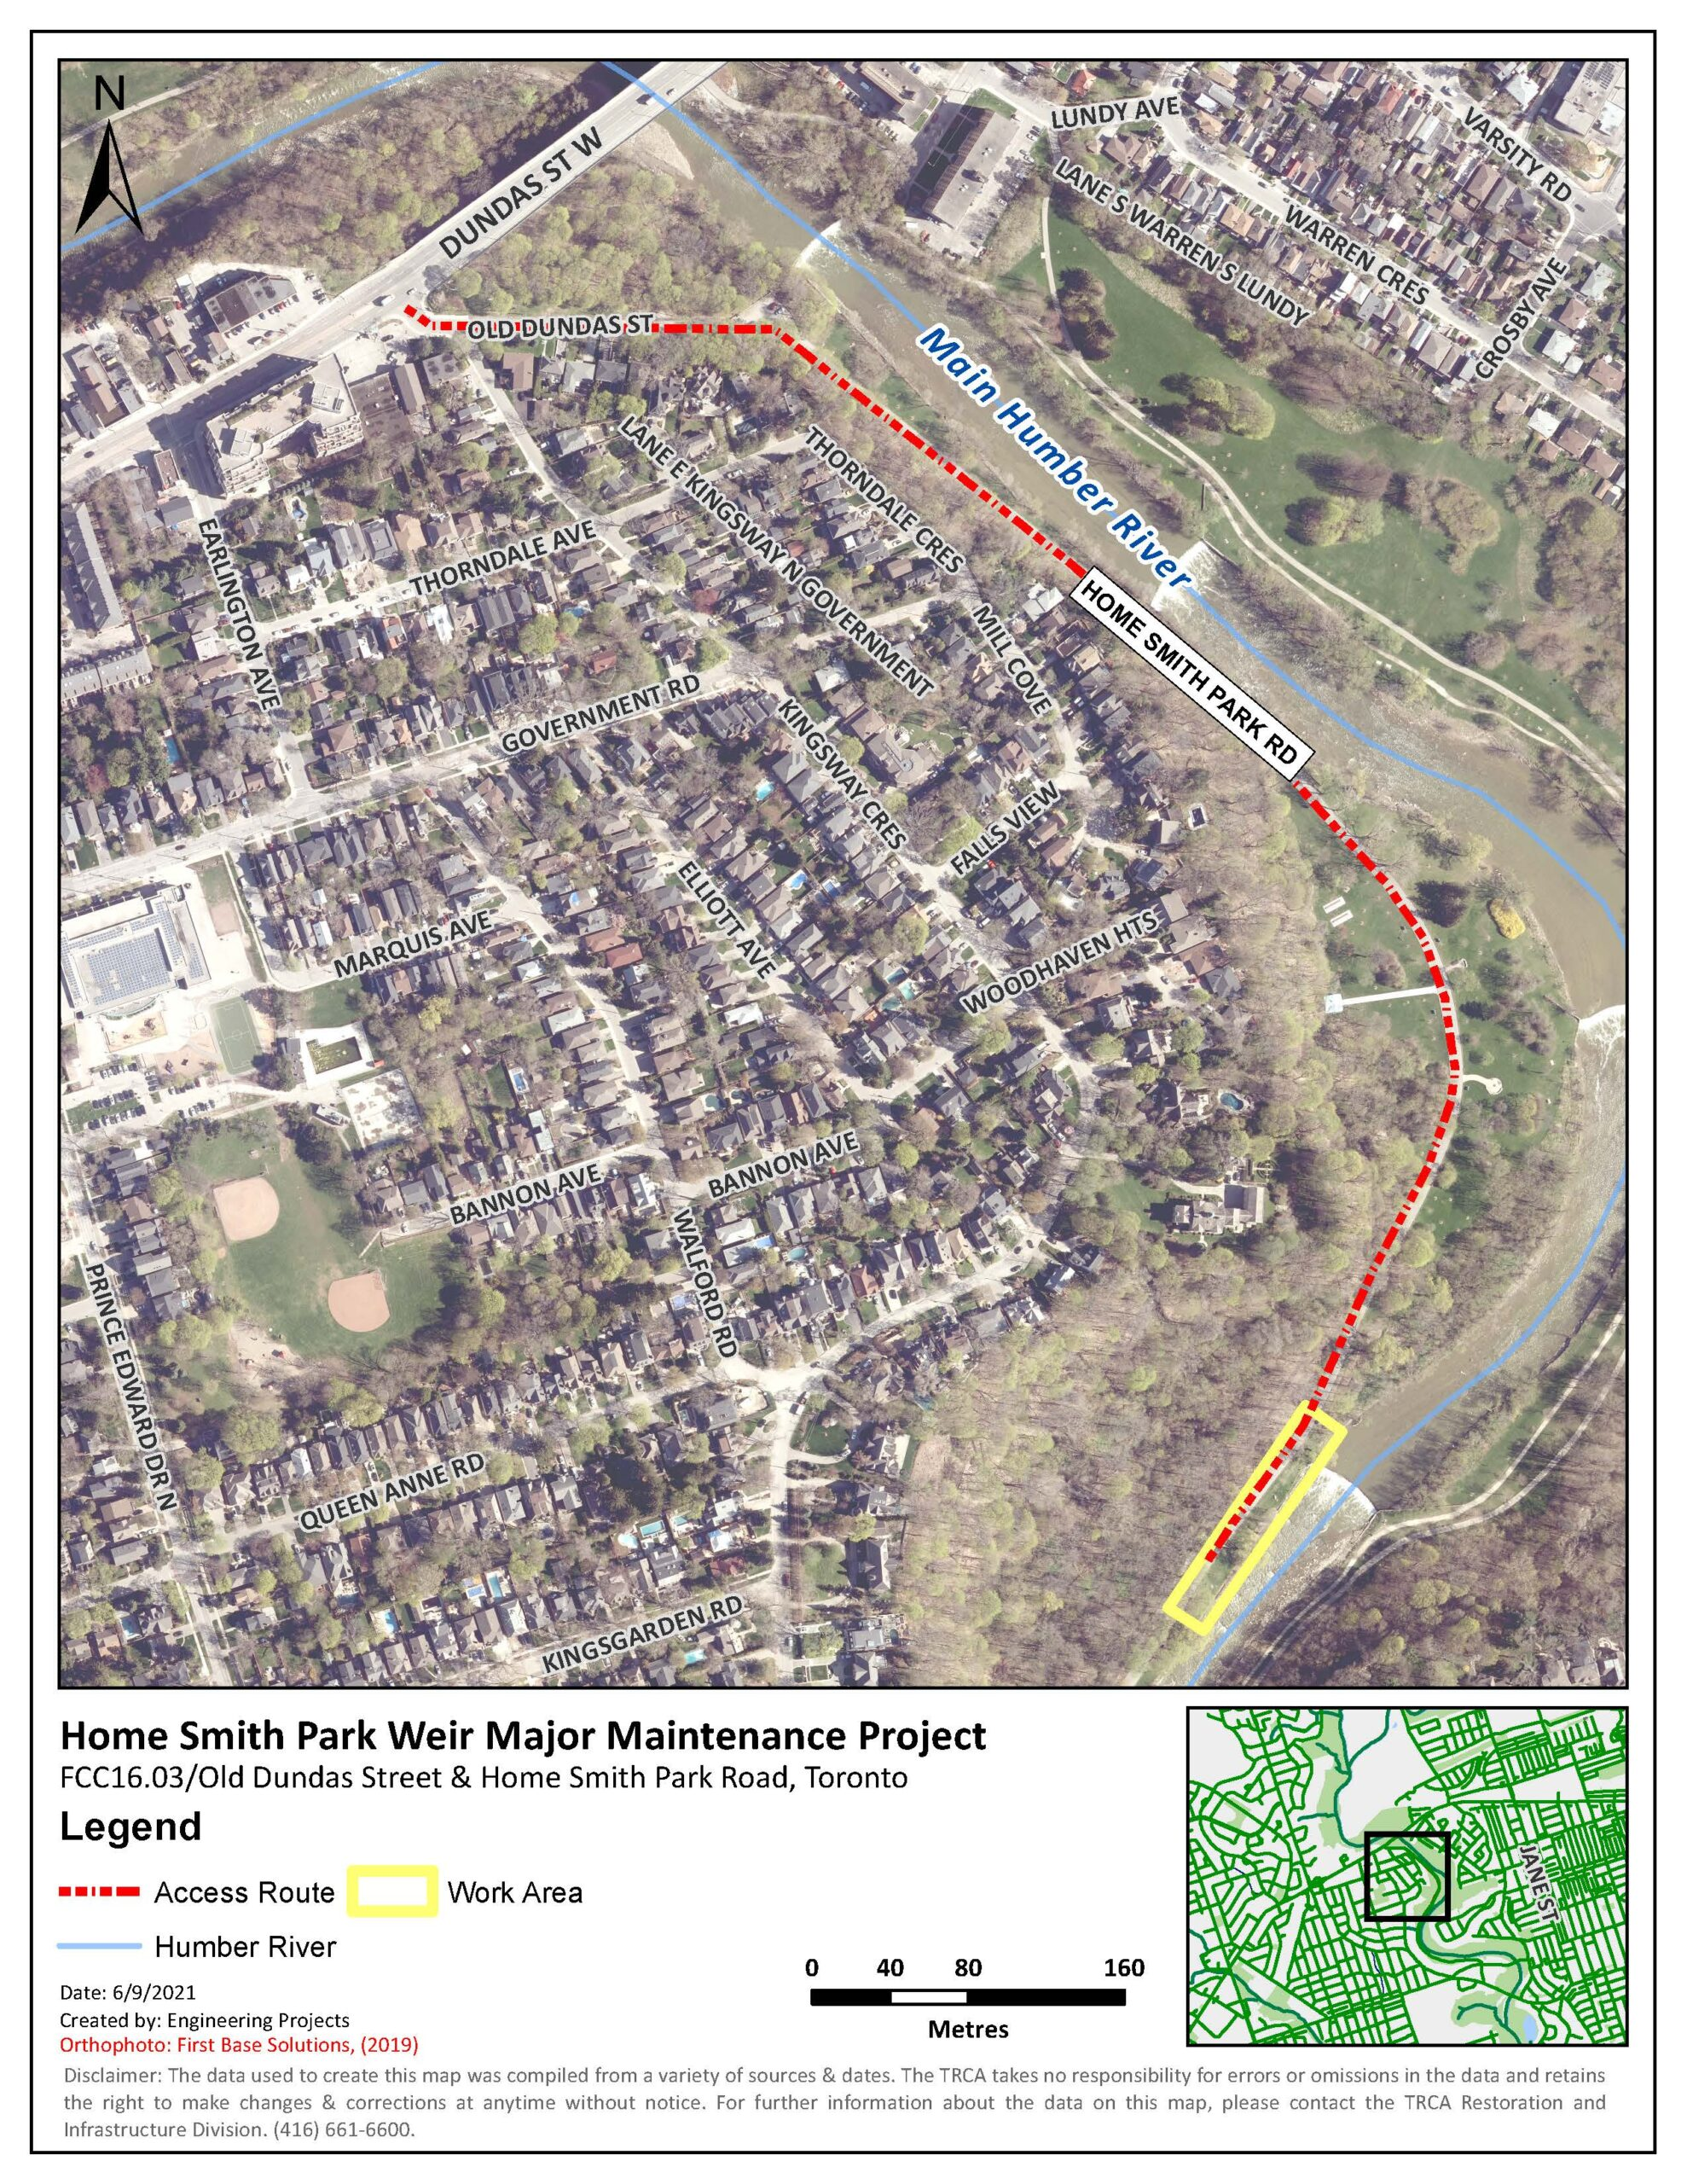 Proposed access route and work area within Home Smith Park.